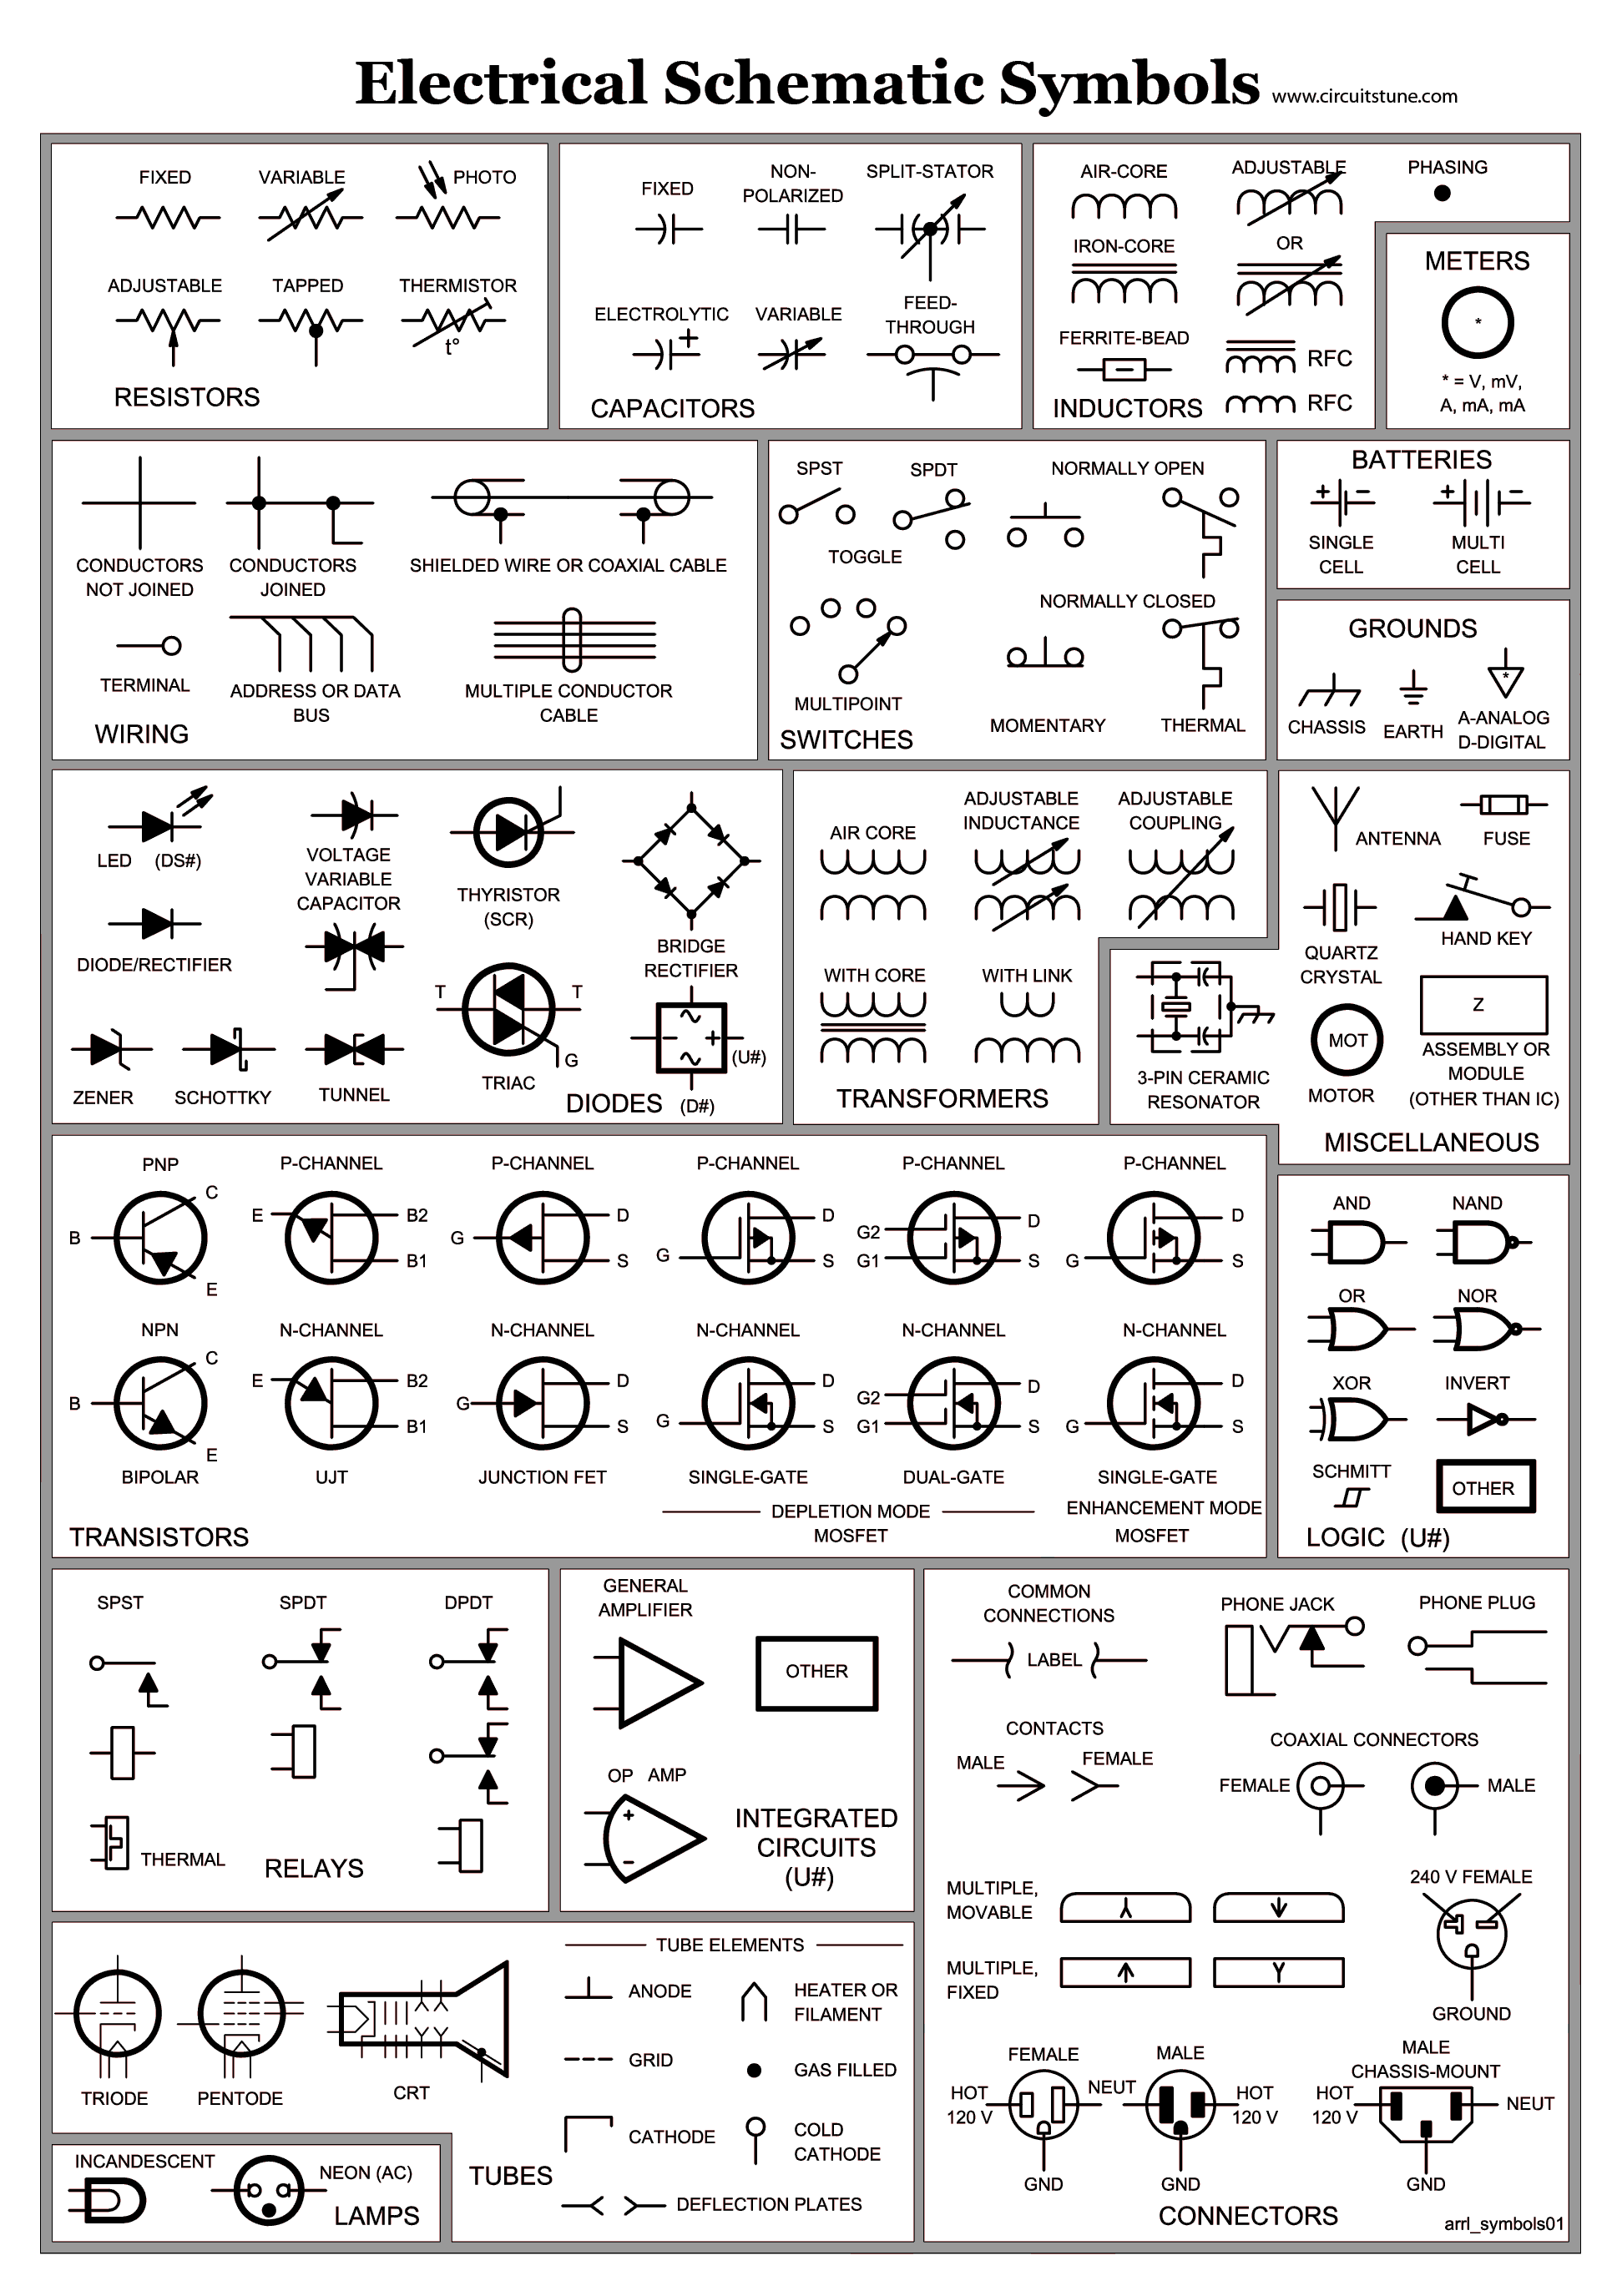 electrical schematic symbols | skinsquiggles | electrical ... simple schematic diagram symbols #3